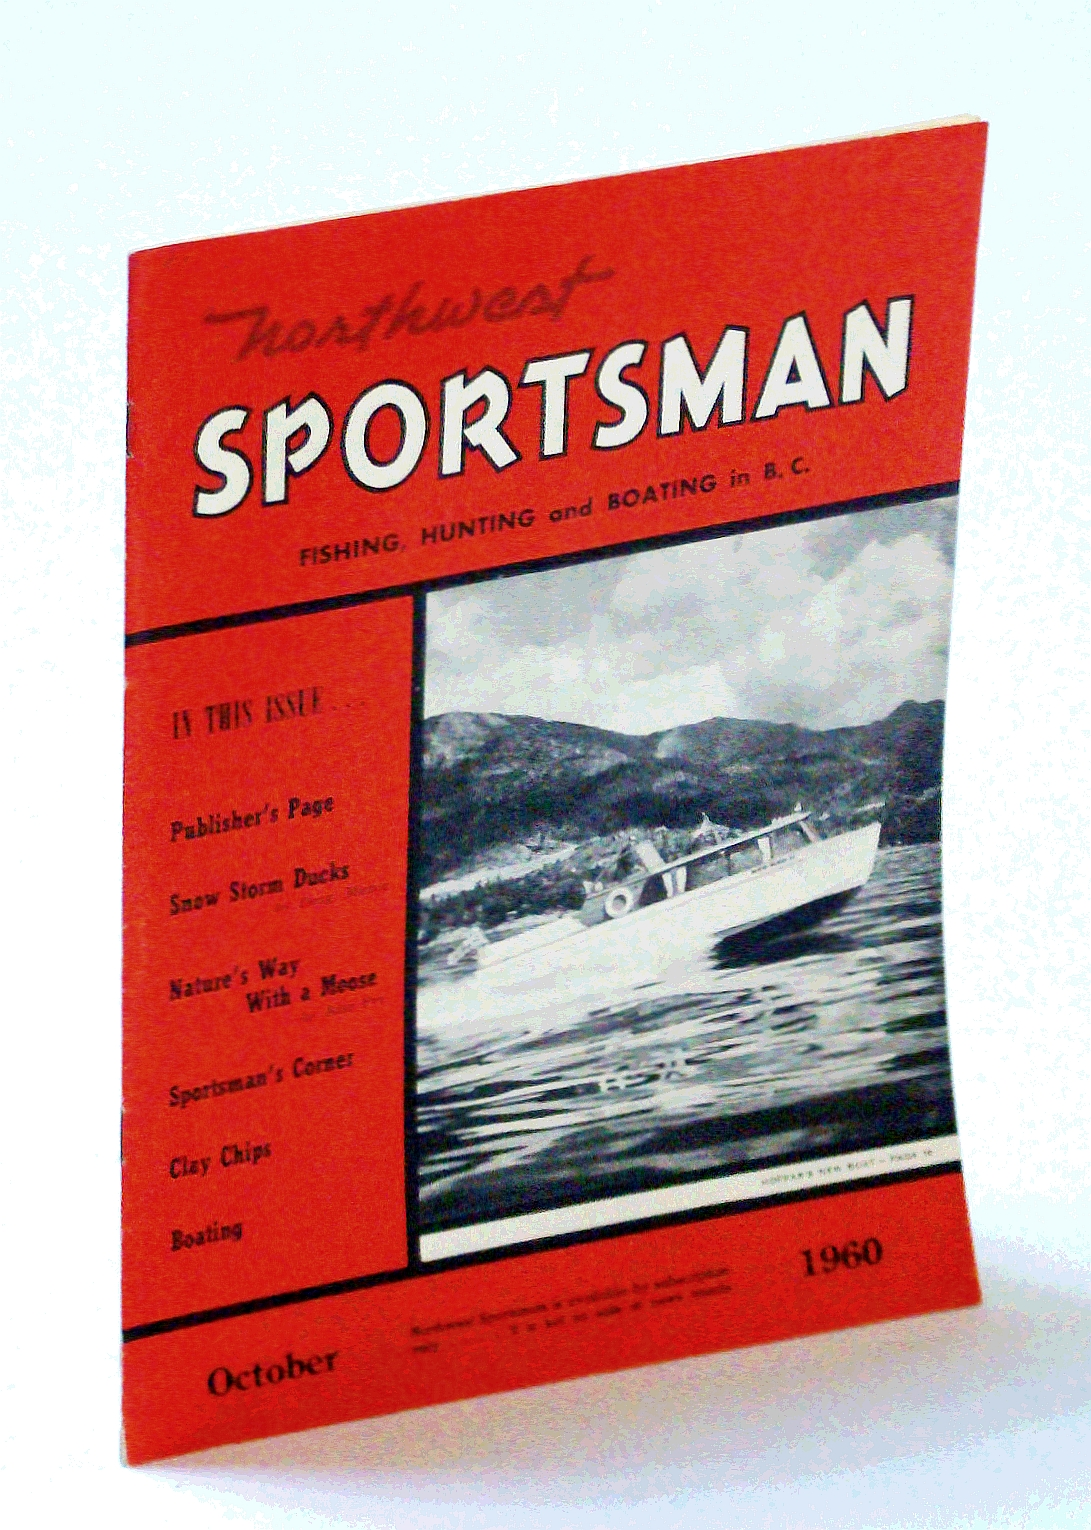 Image for Northwest Sportsman Magazine - Fishing, Hunting and Boating in B.C., October [Oct.] 1960 - Beat the Tyee In His Pool